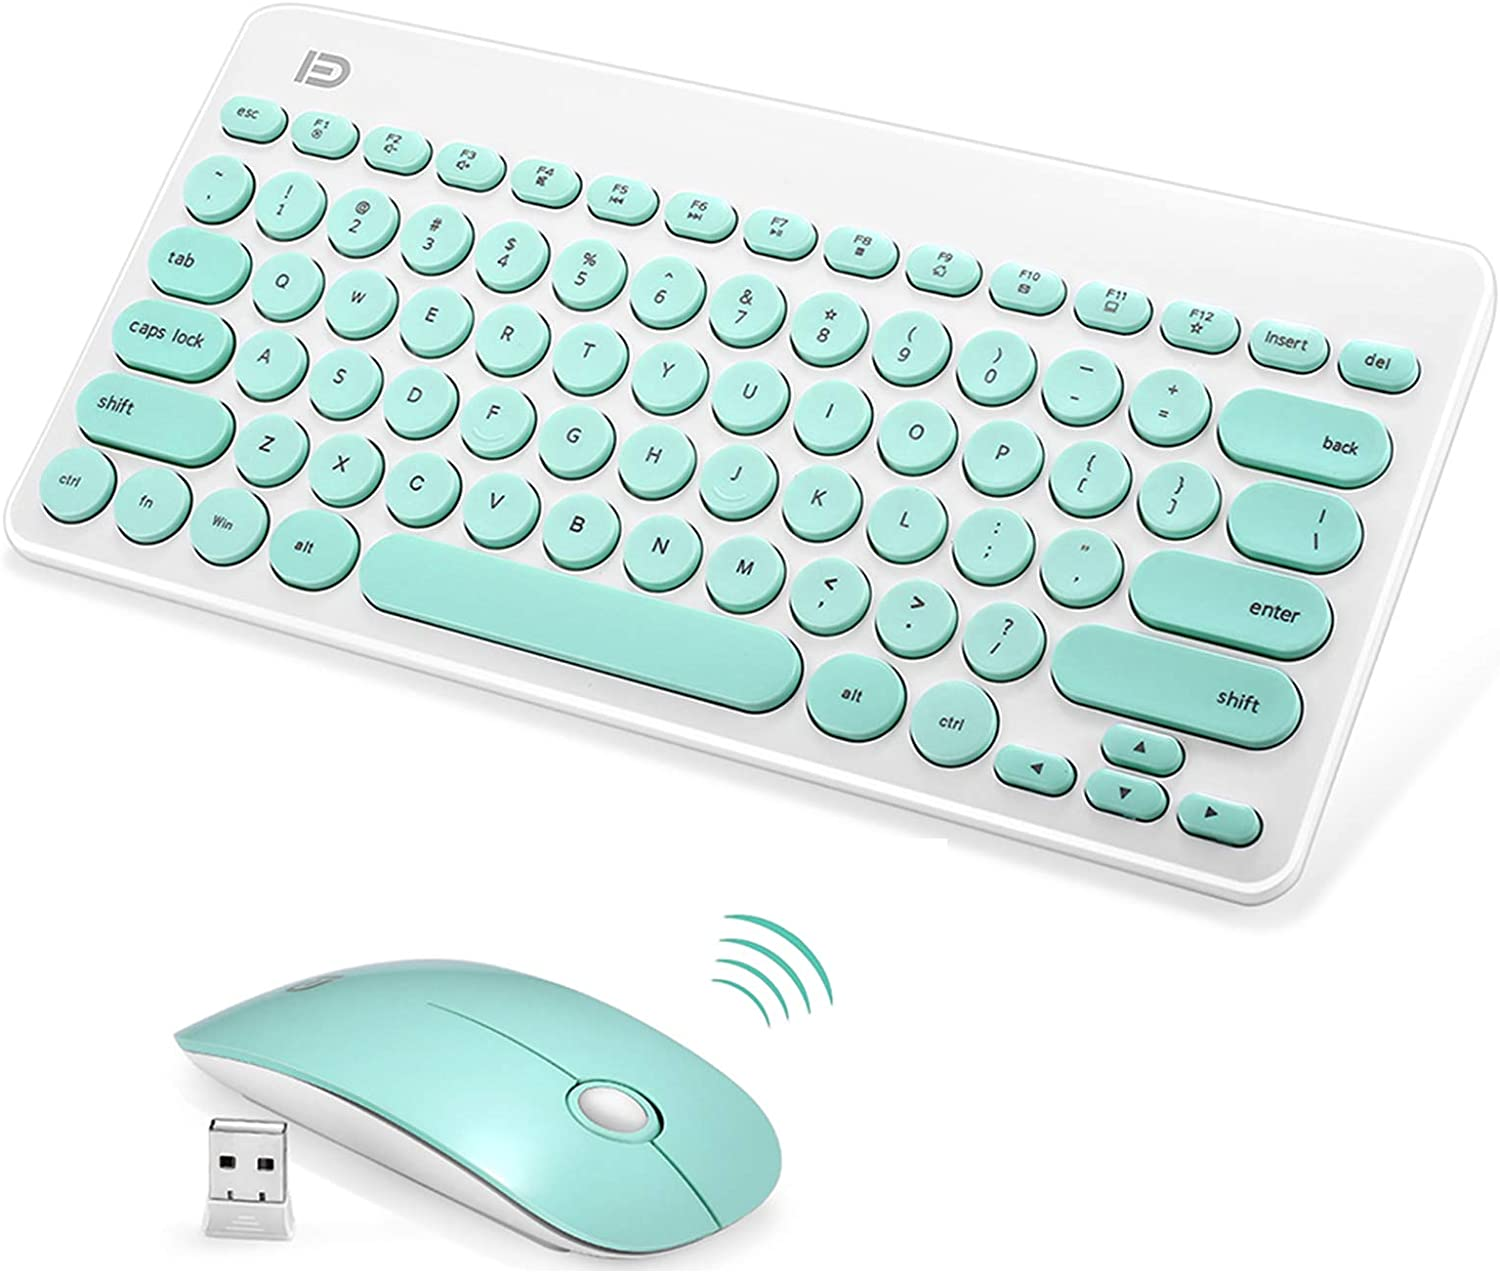 Wireless Keyboard and Mouse Combo, FD iK6620 2.4GHz Cordless Cute Round Key Set Smart Power-Saving Whisper-Quiet Slim Combo for Laptop, Computer,TV and Mac (79-Key, Mint Green No Number Keys)